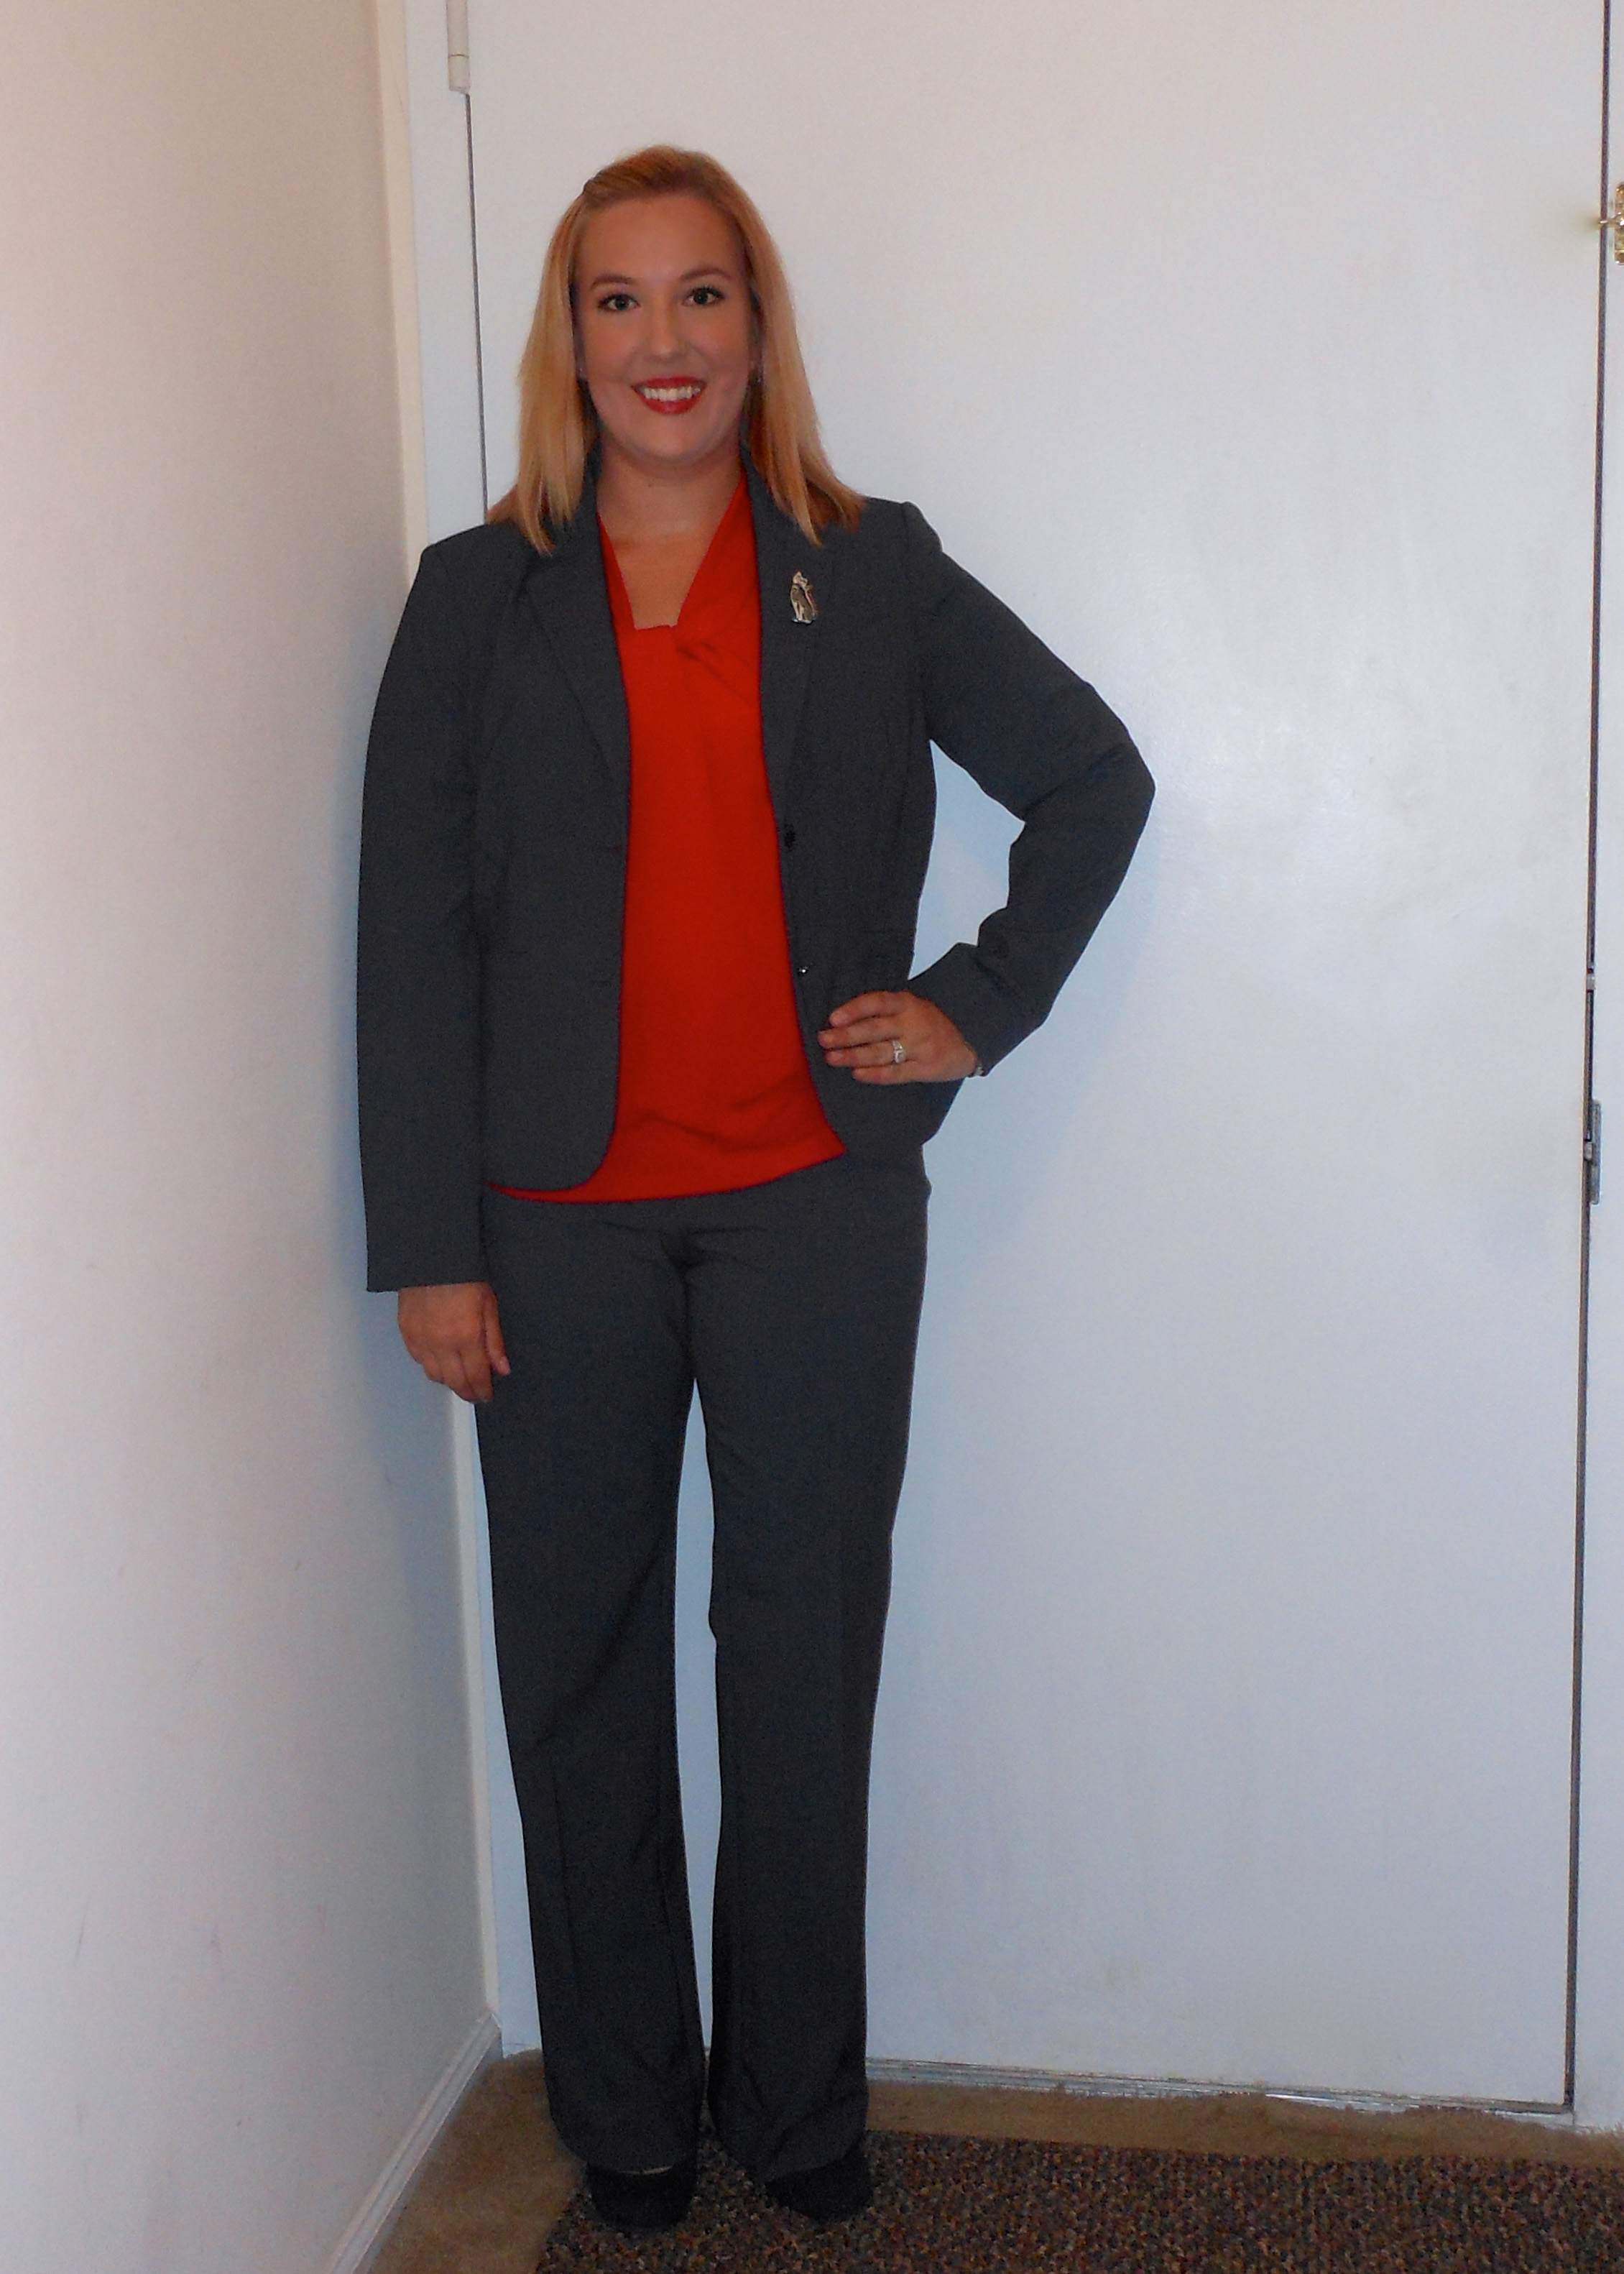 teach in style minus m interview attire grey calvin klein suit grey pants grey blazer red sleeveless top black and grey shoes cat pin